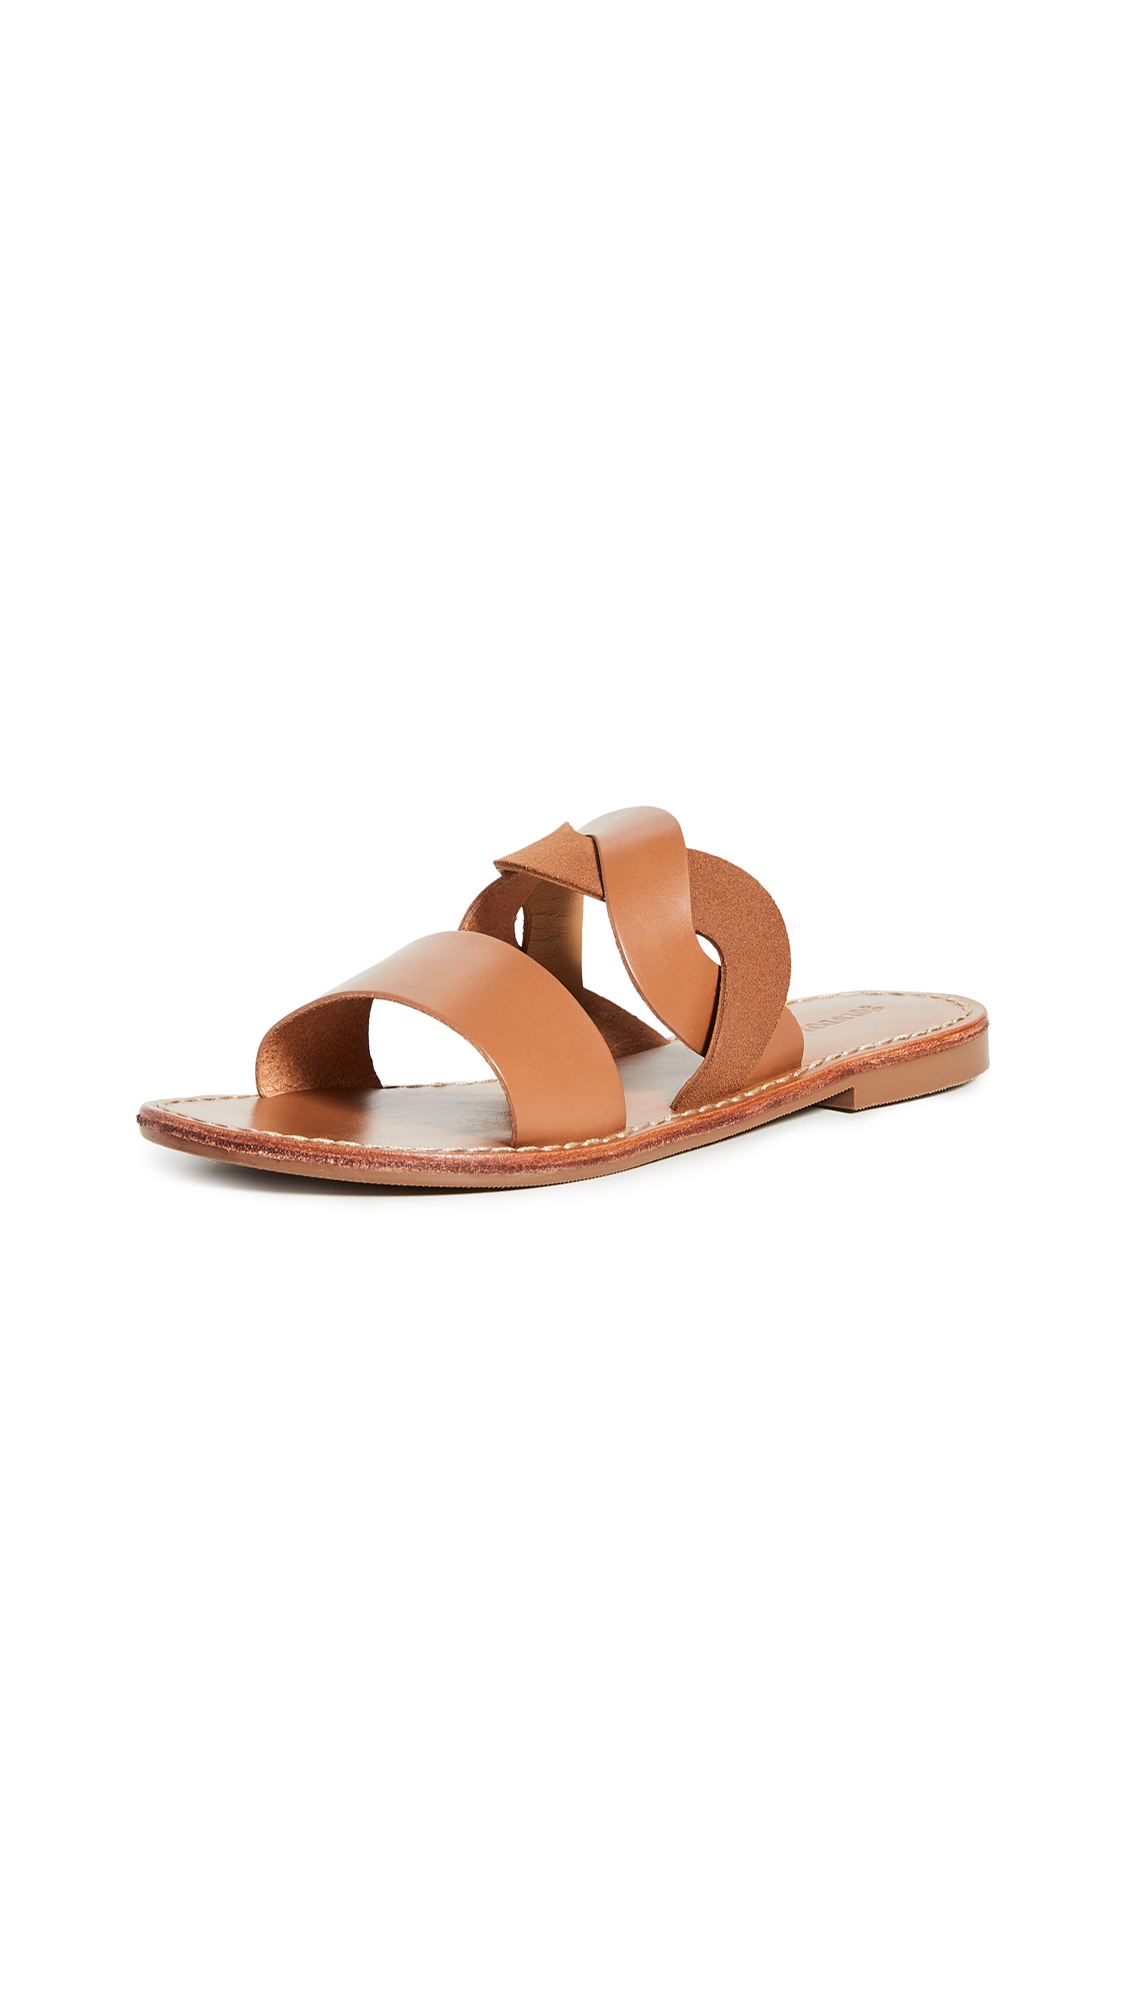 Soludos Imogen Leather Sandals - 30% Off Sale